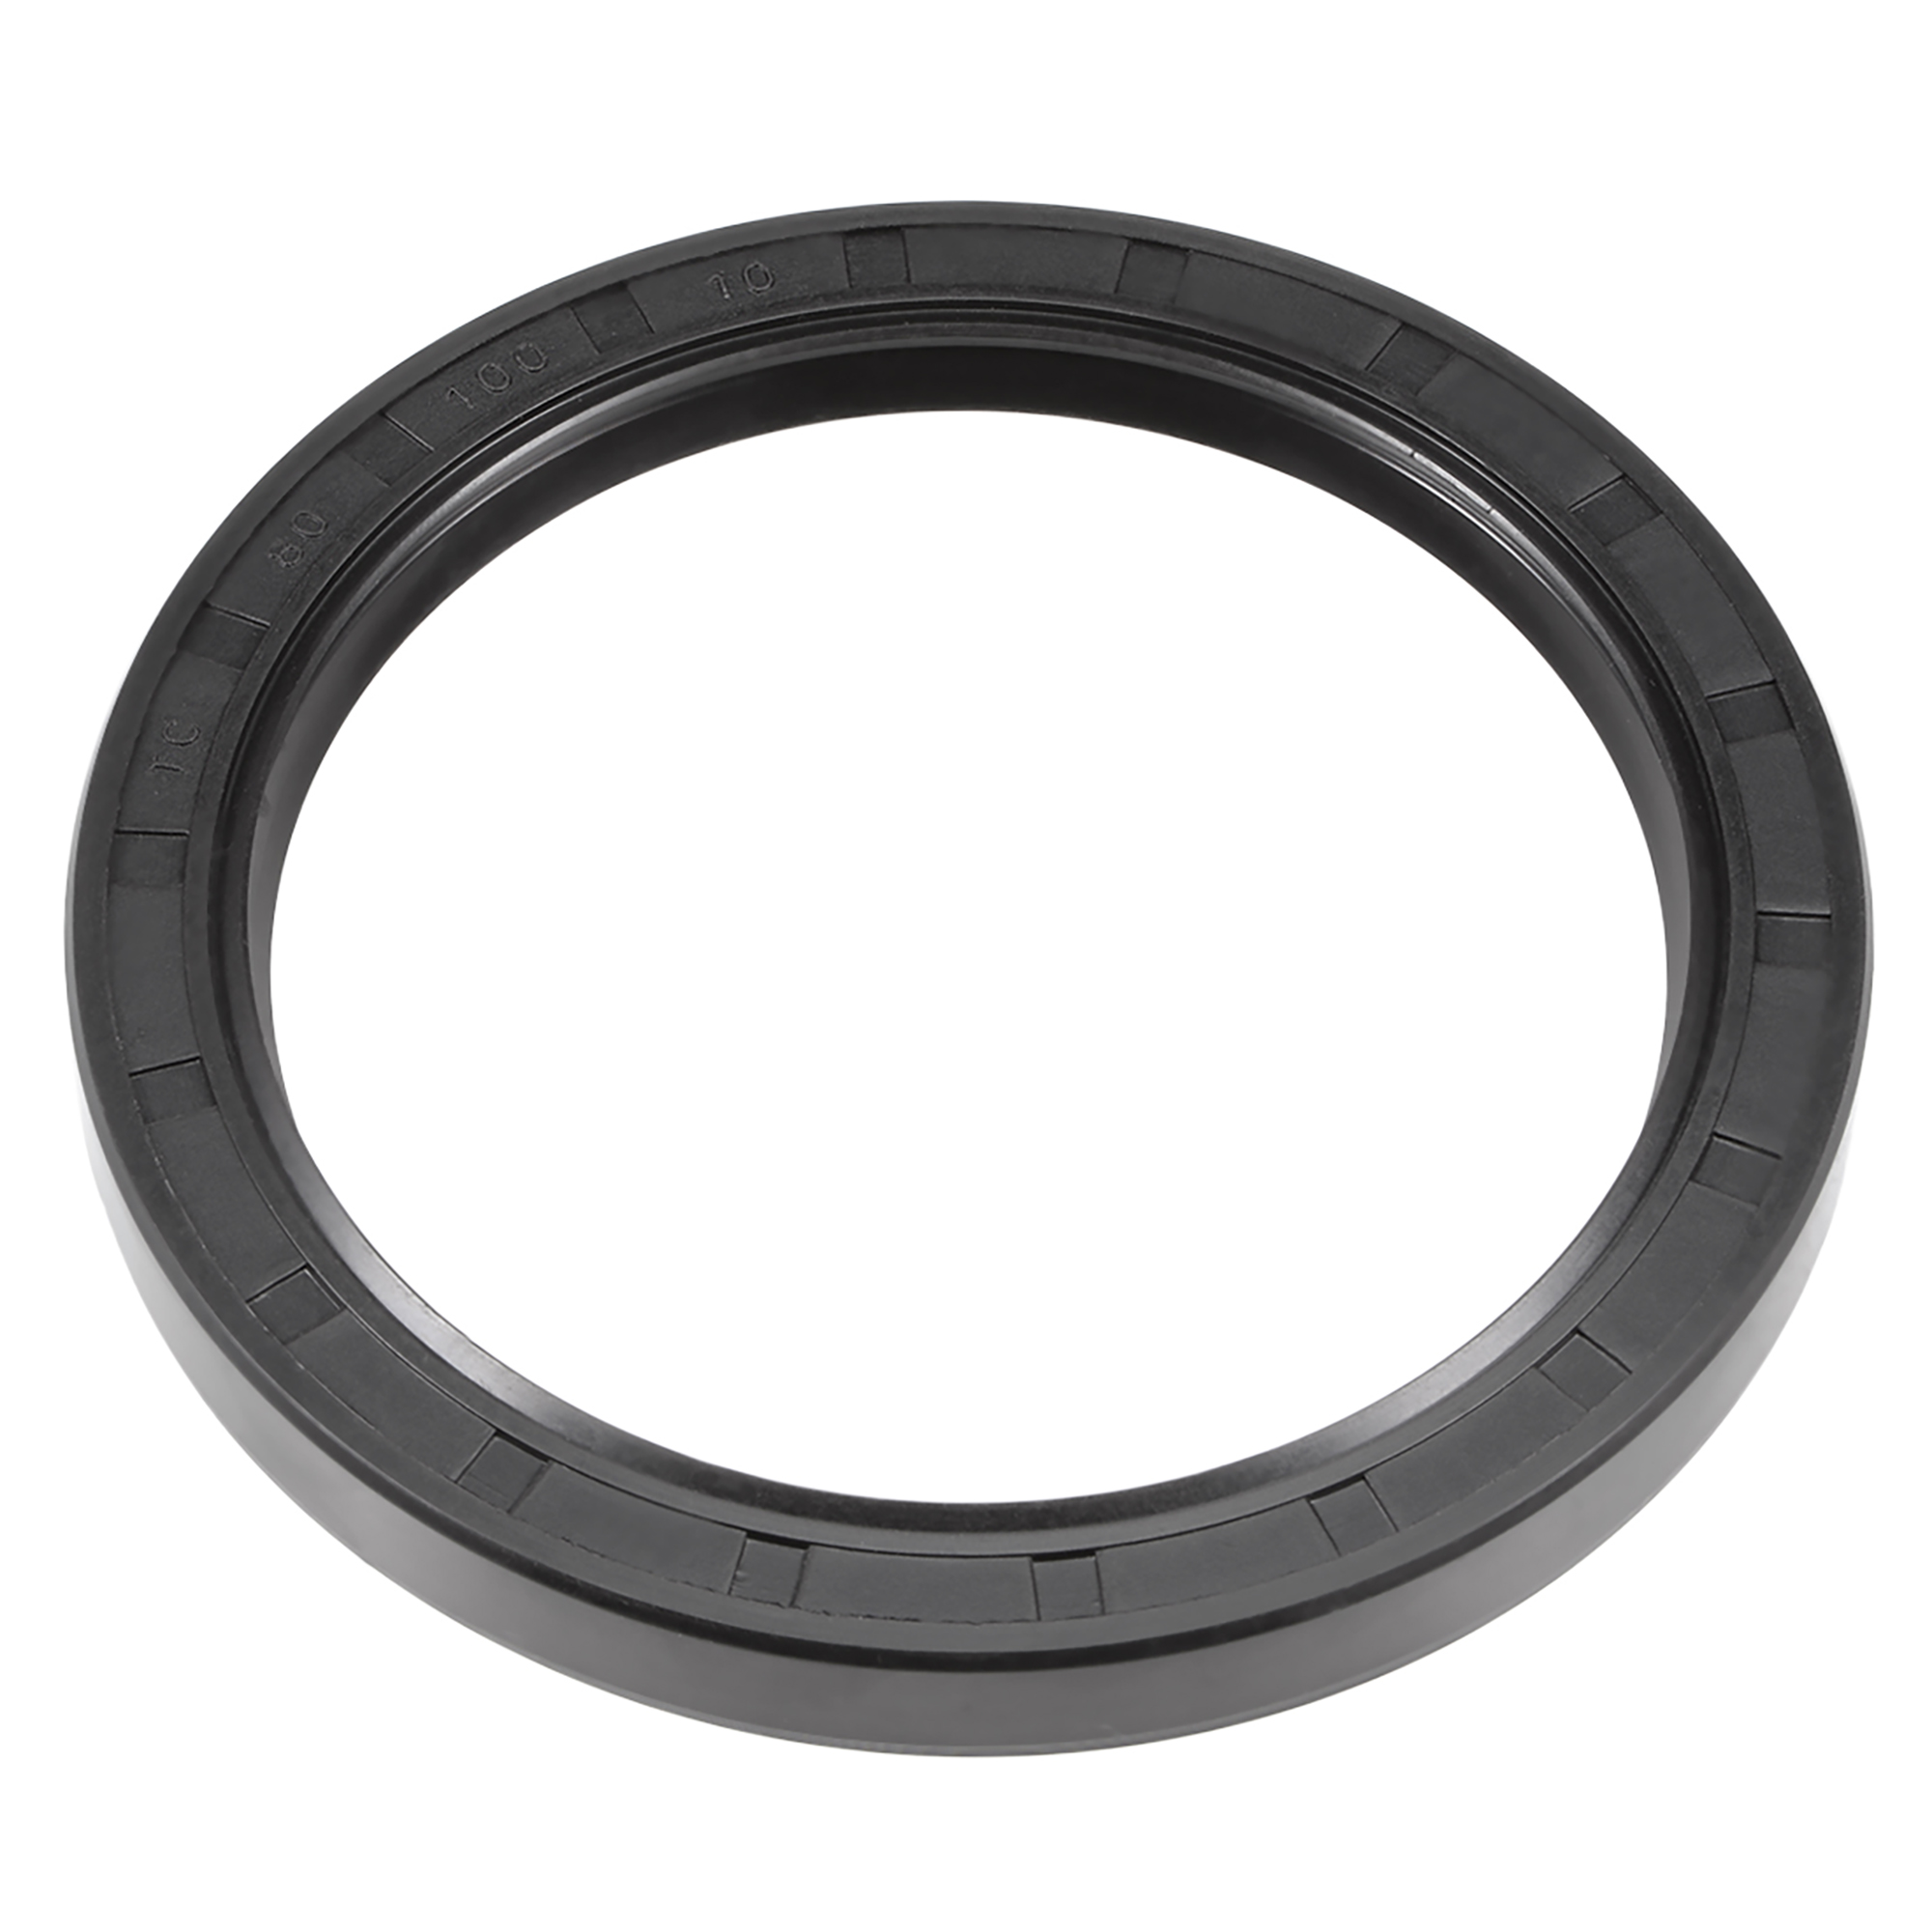 Oil Seal Size 80mm X100mm X 10mm